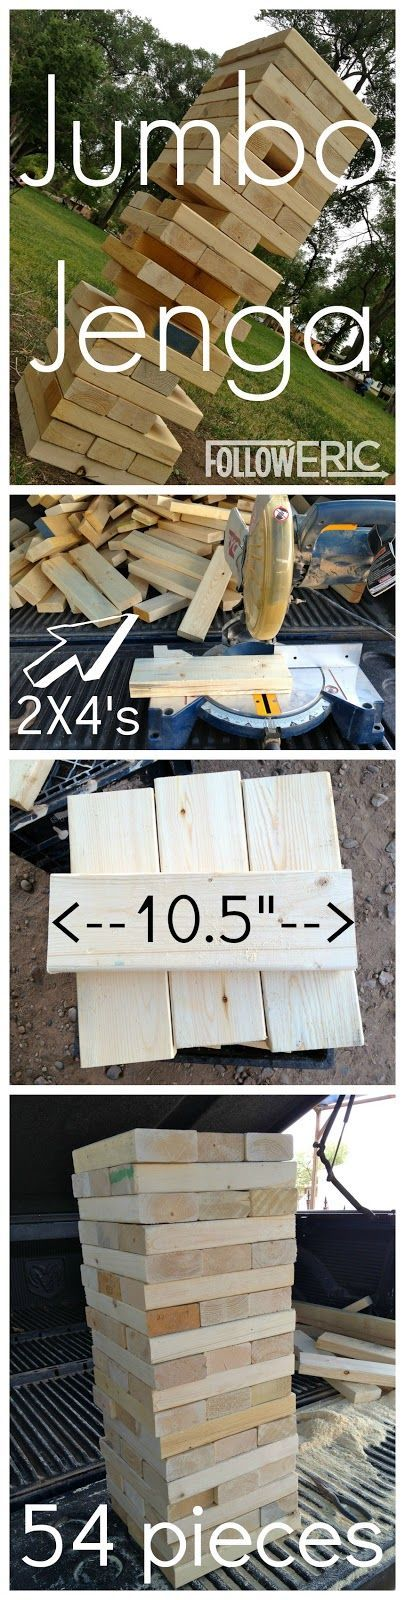 Jumbo Jenga - paint these red, white and blue and it would be perfect for a 4th of July party game!